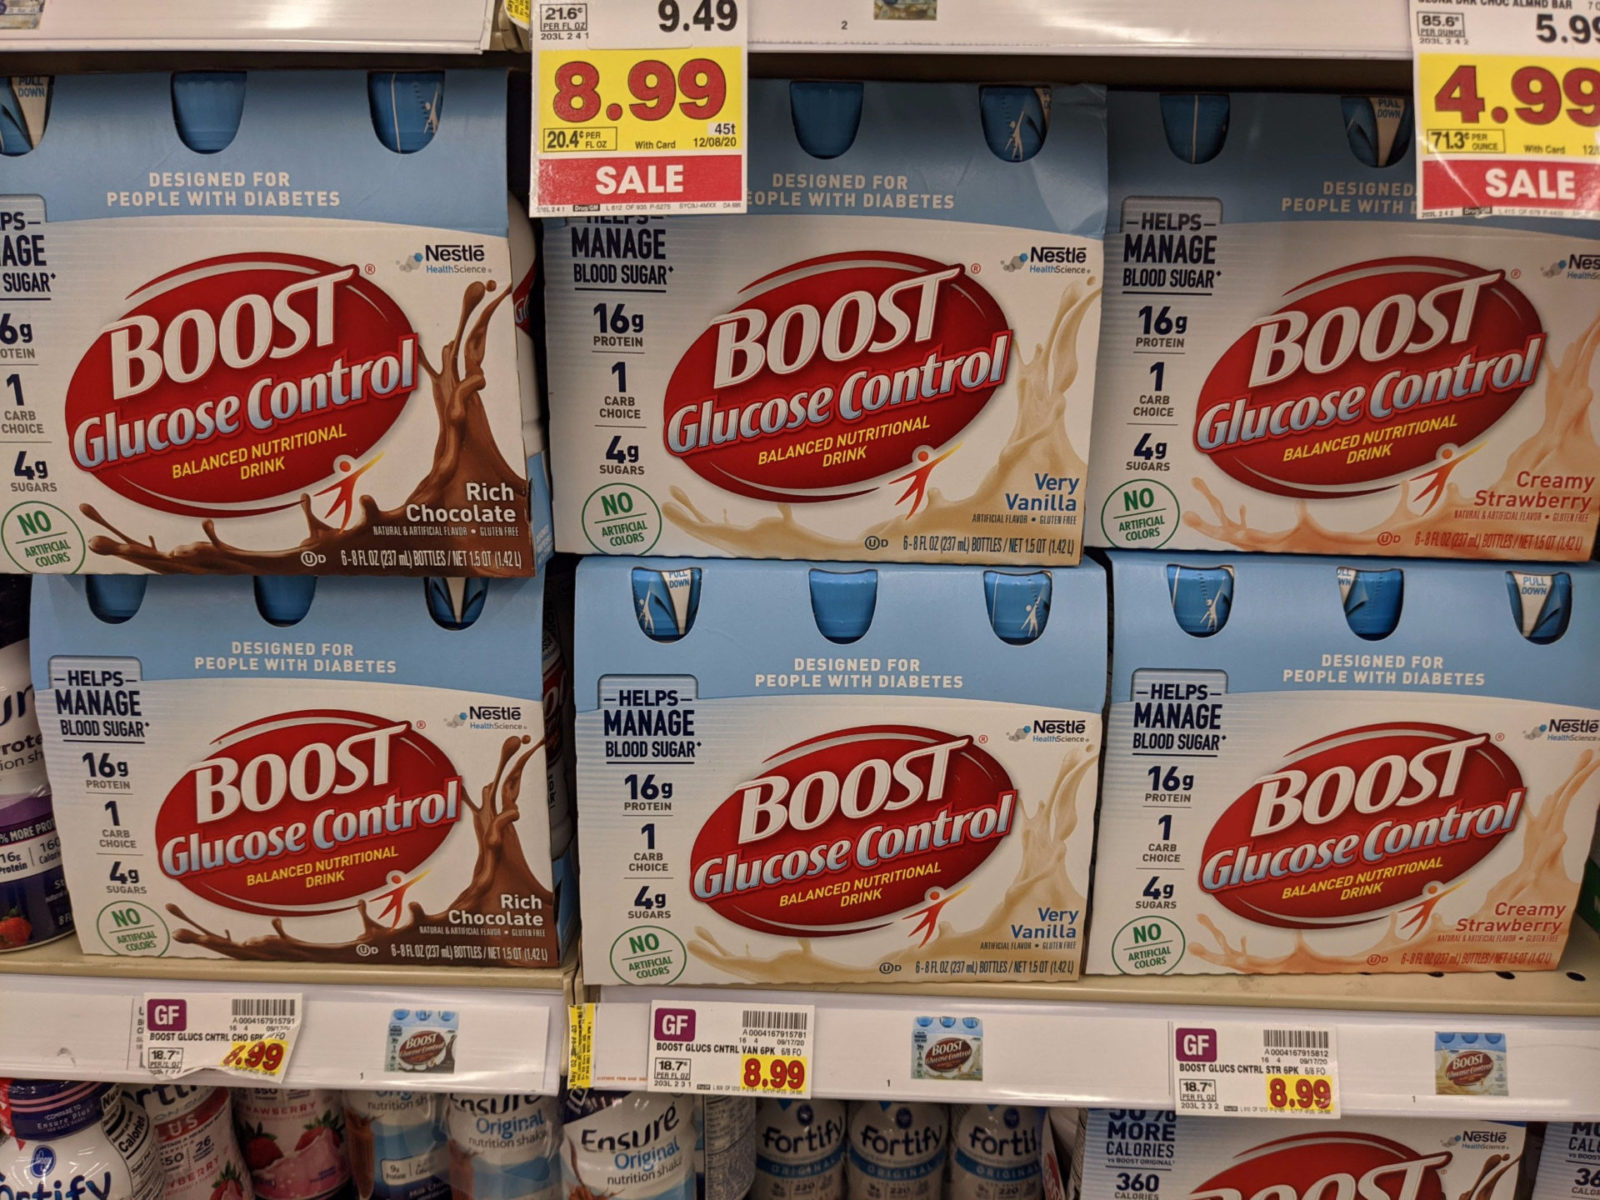 Just In Time For National Diabetes Awareness Month - Big Savings On BOOST Glucose Control® Drink At Kroger